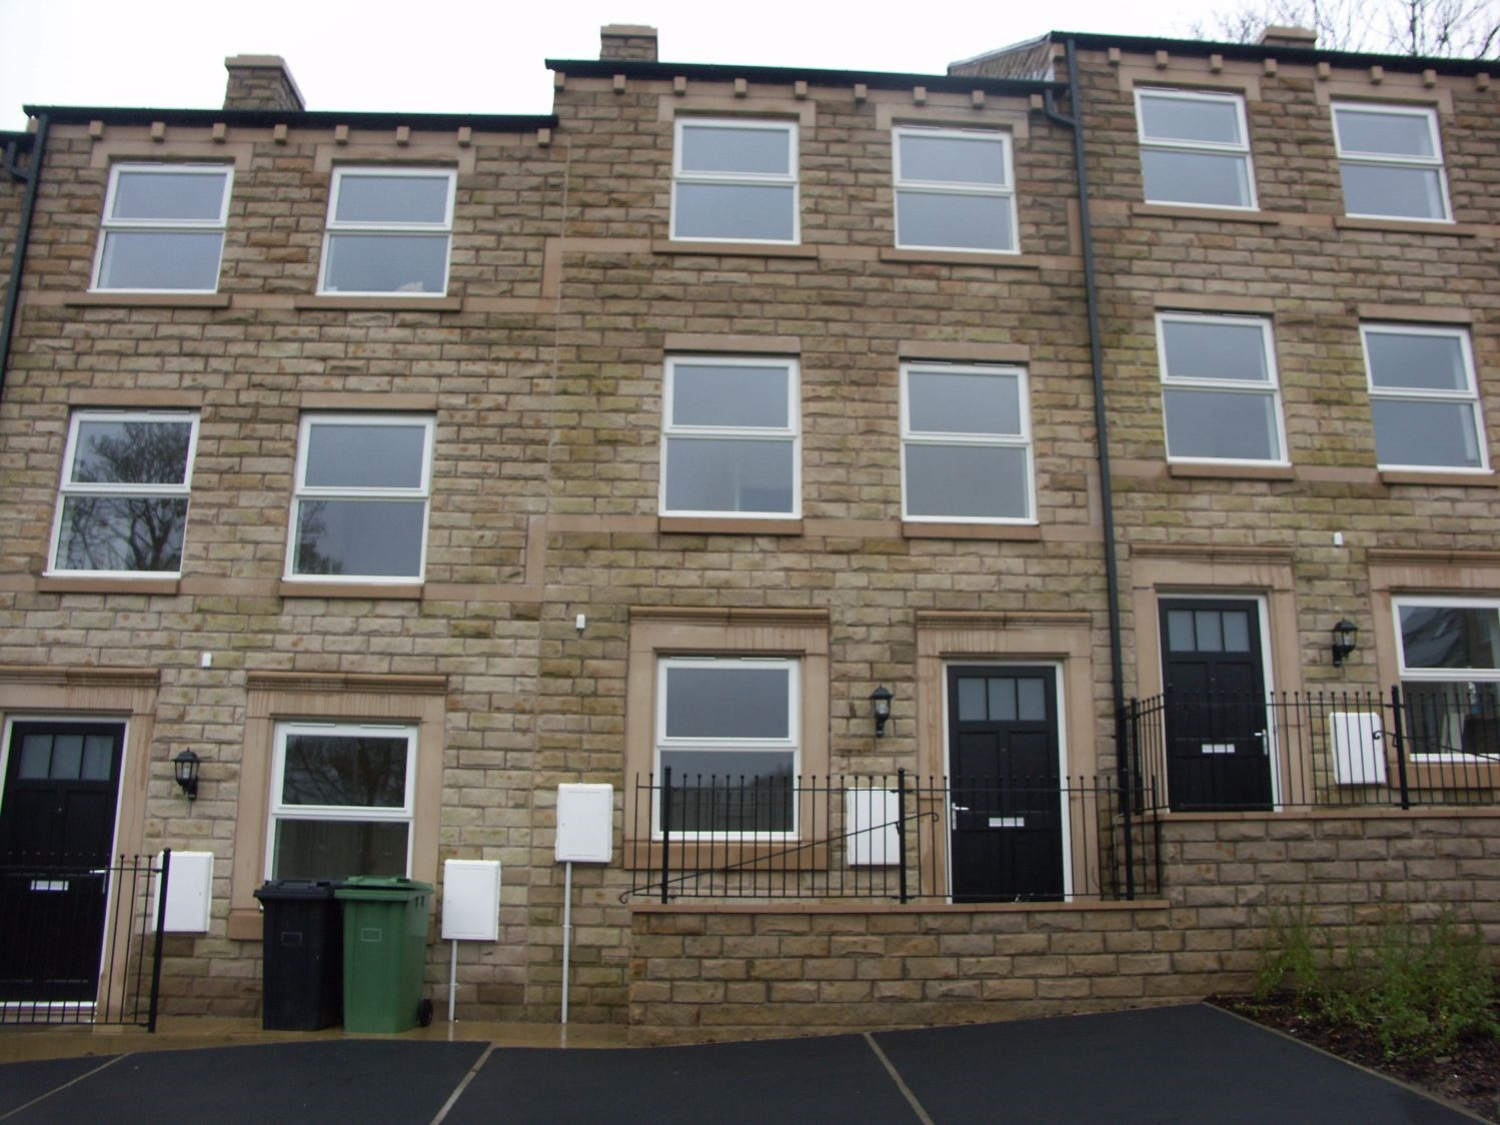 8 Woodland View, Holmfirth, HD9 3JE